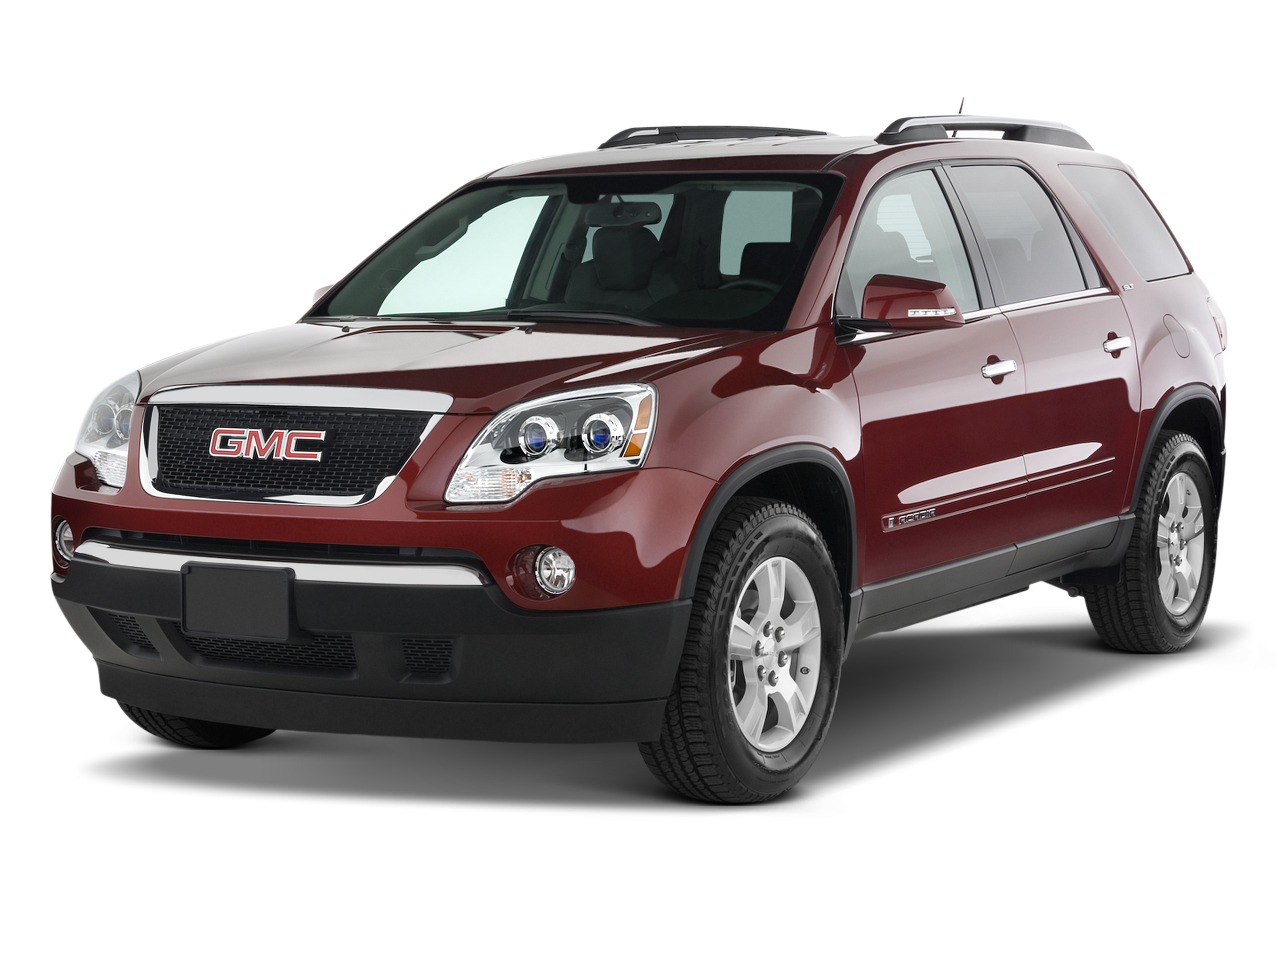 2011 Gmc Acadia Review Ratings Specs Prices And Photos